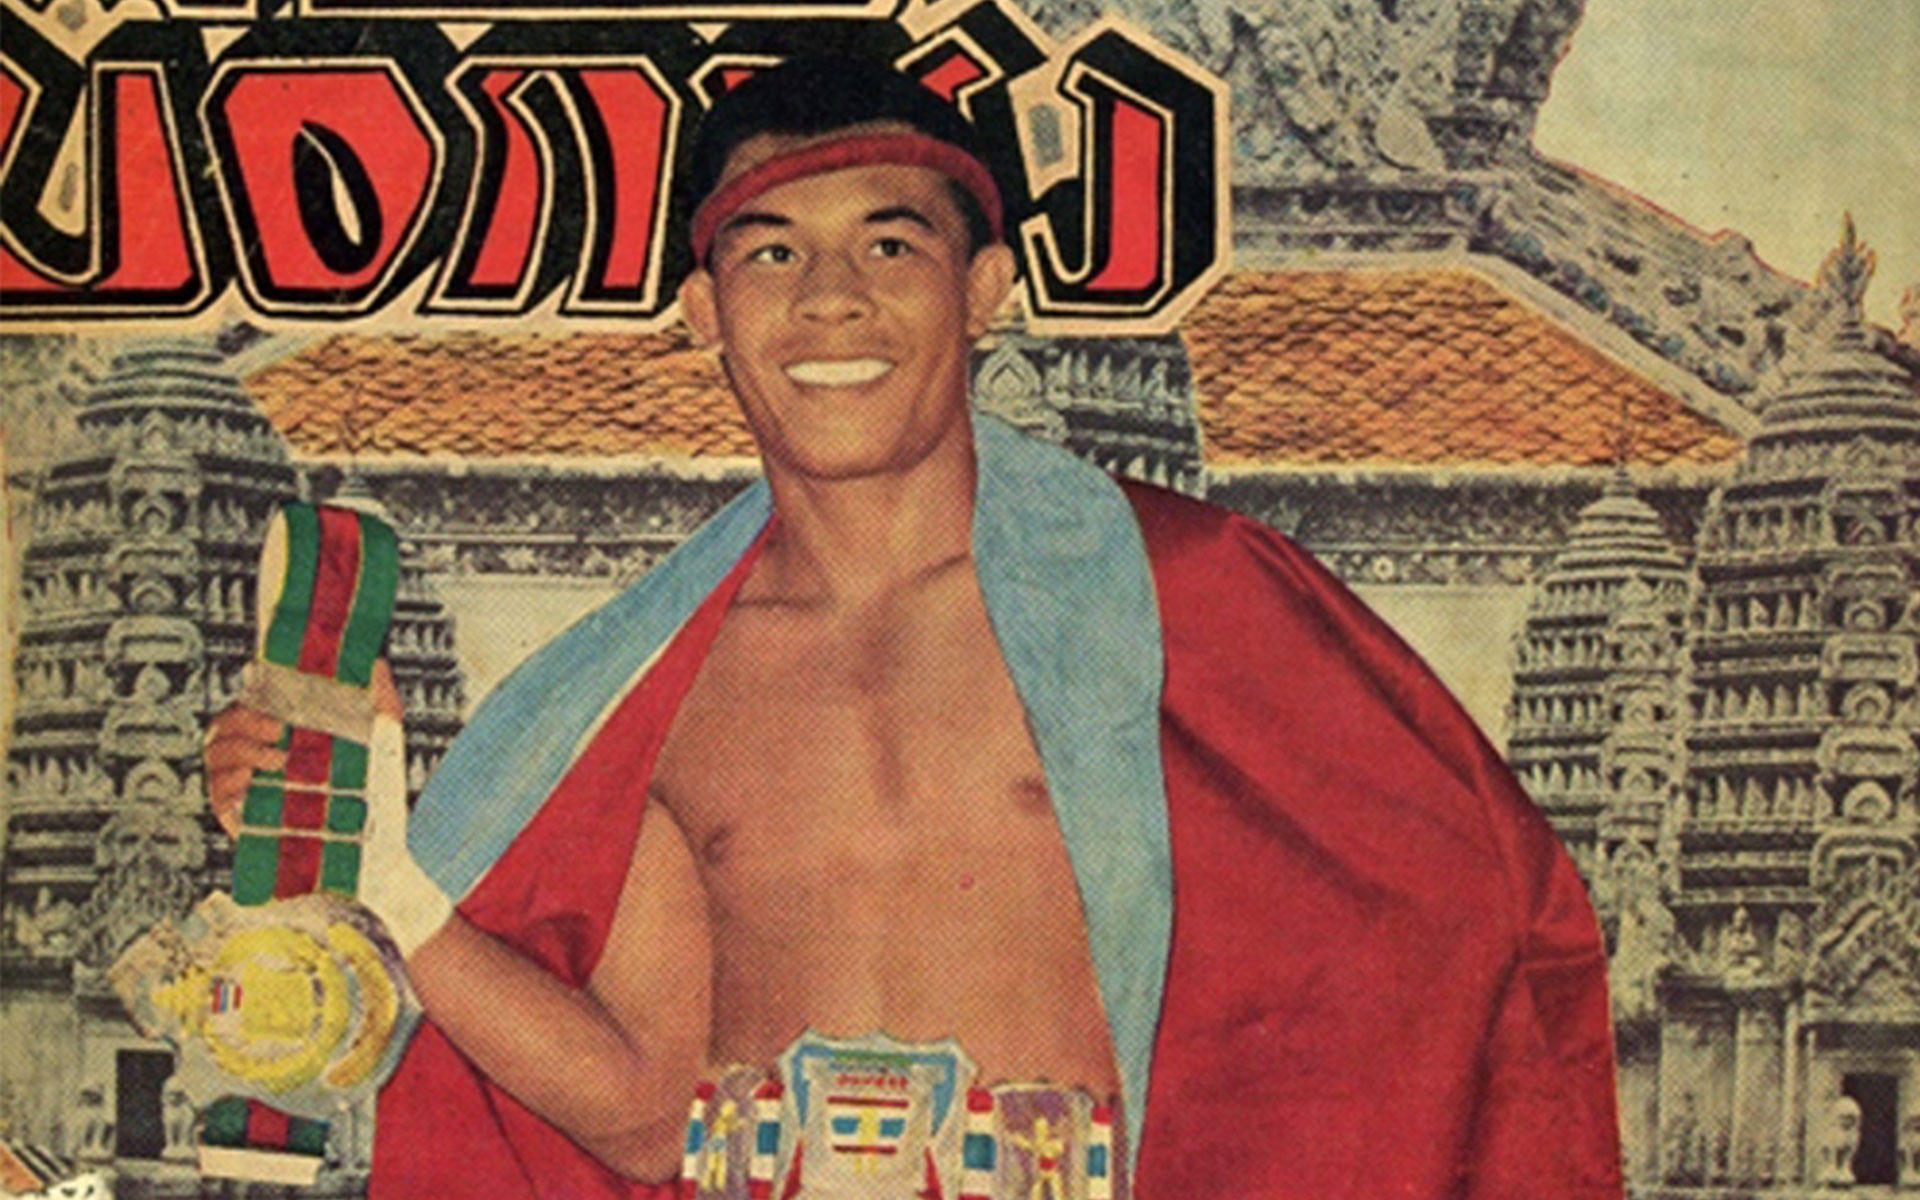 APIDEJ SIT-HIRUN: FIGHTER OF THE CENTURY